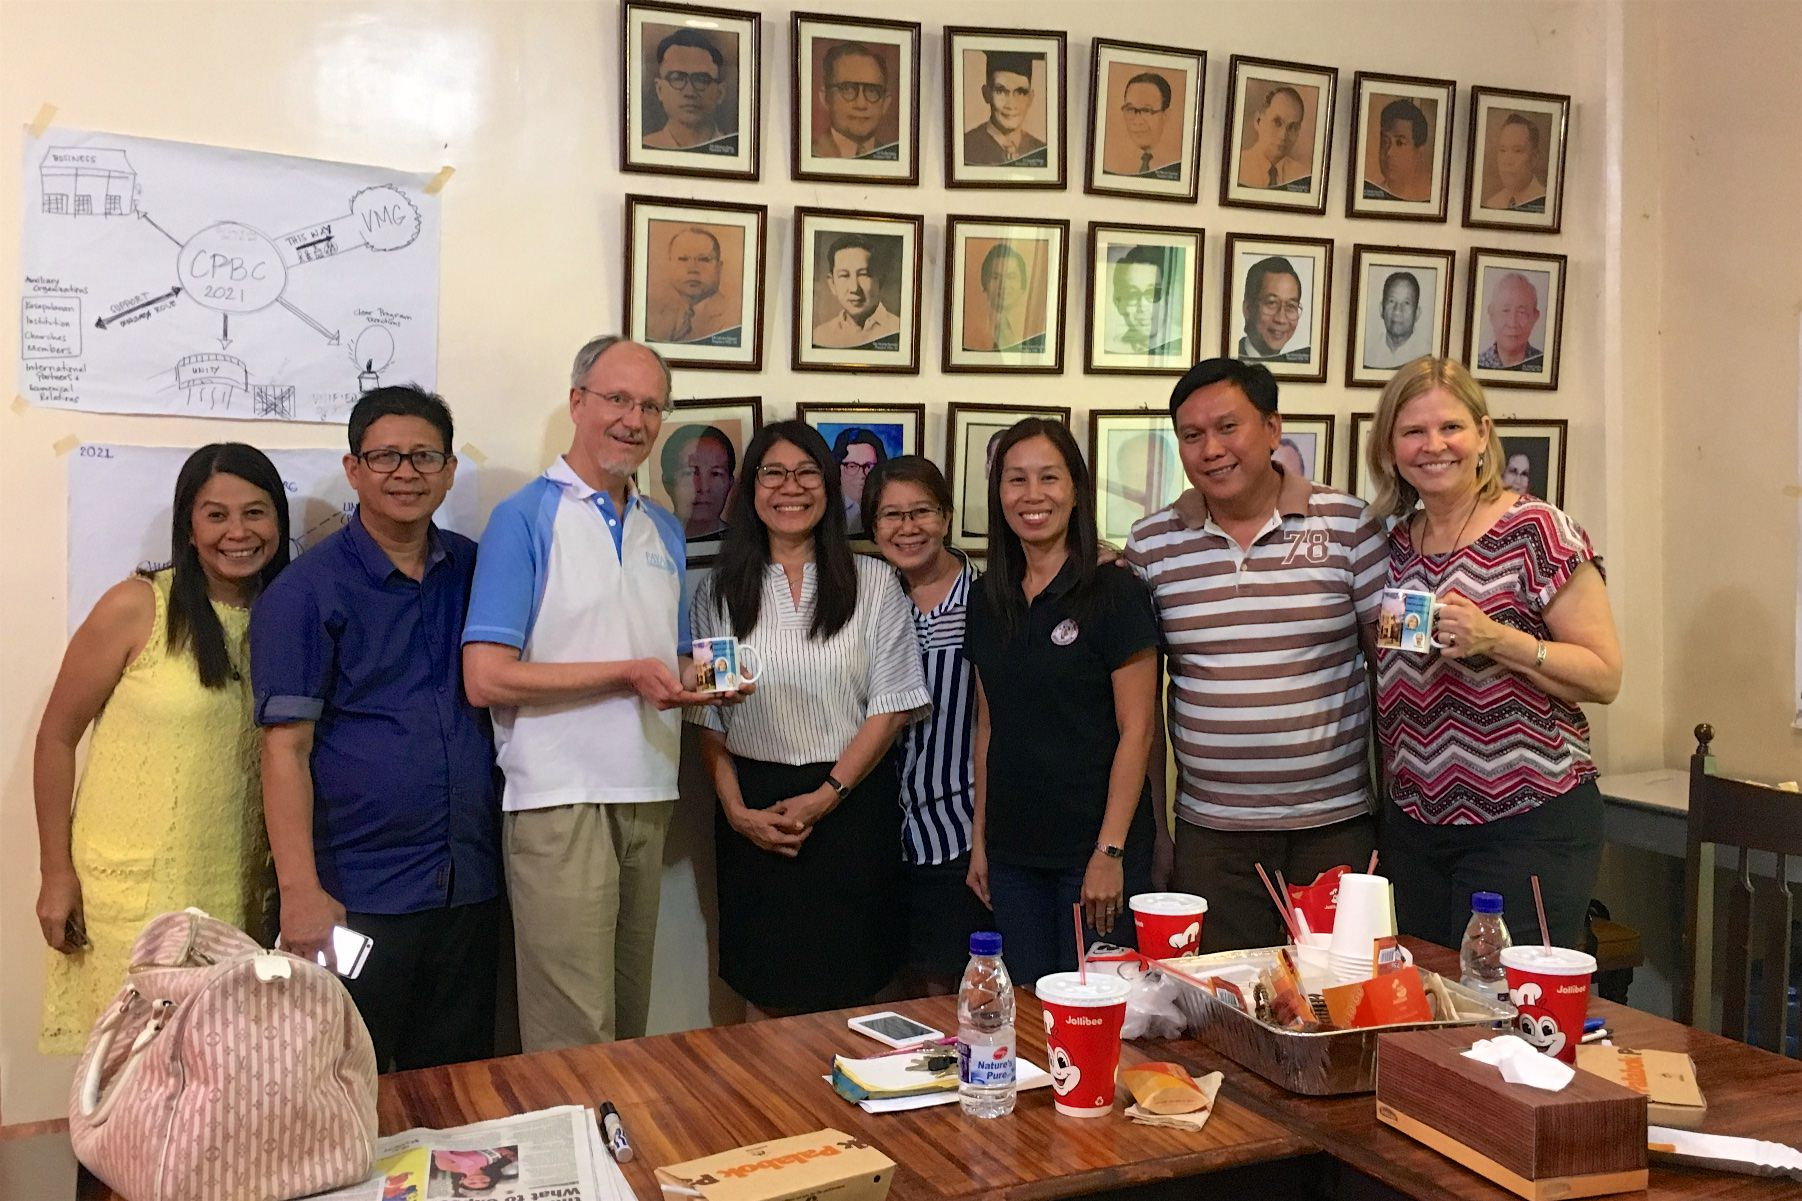 CPBC leaders invited us to work with them as they seek God's direction for ministry for the next five years.